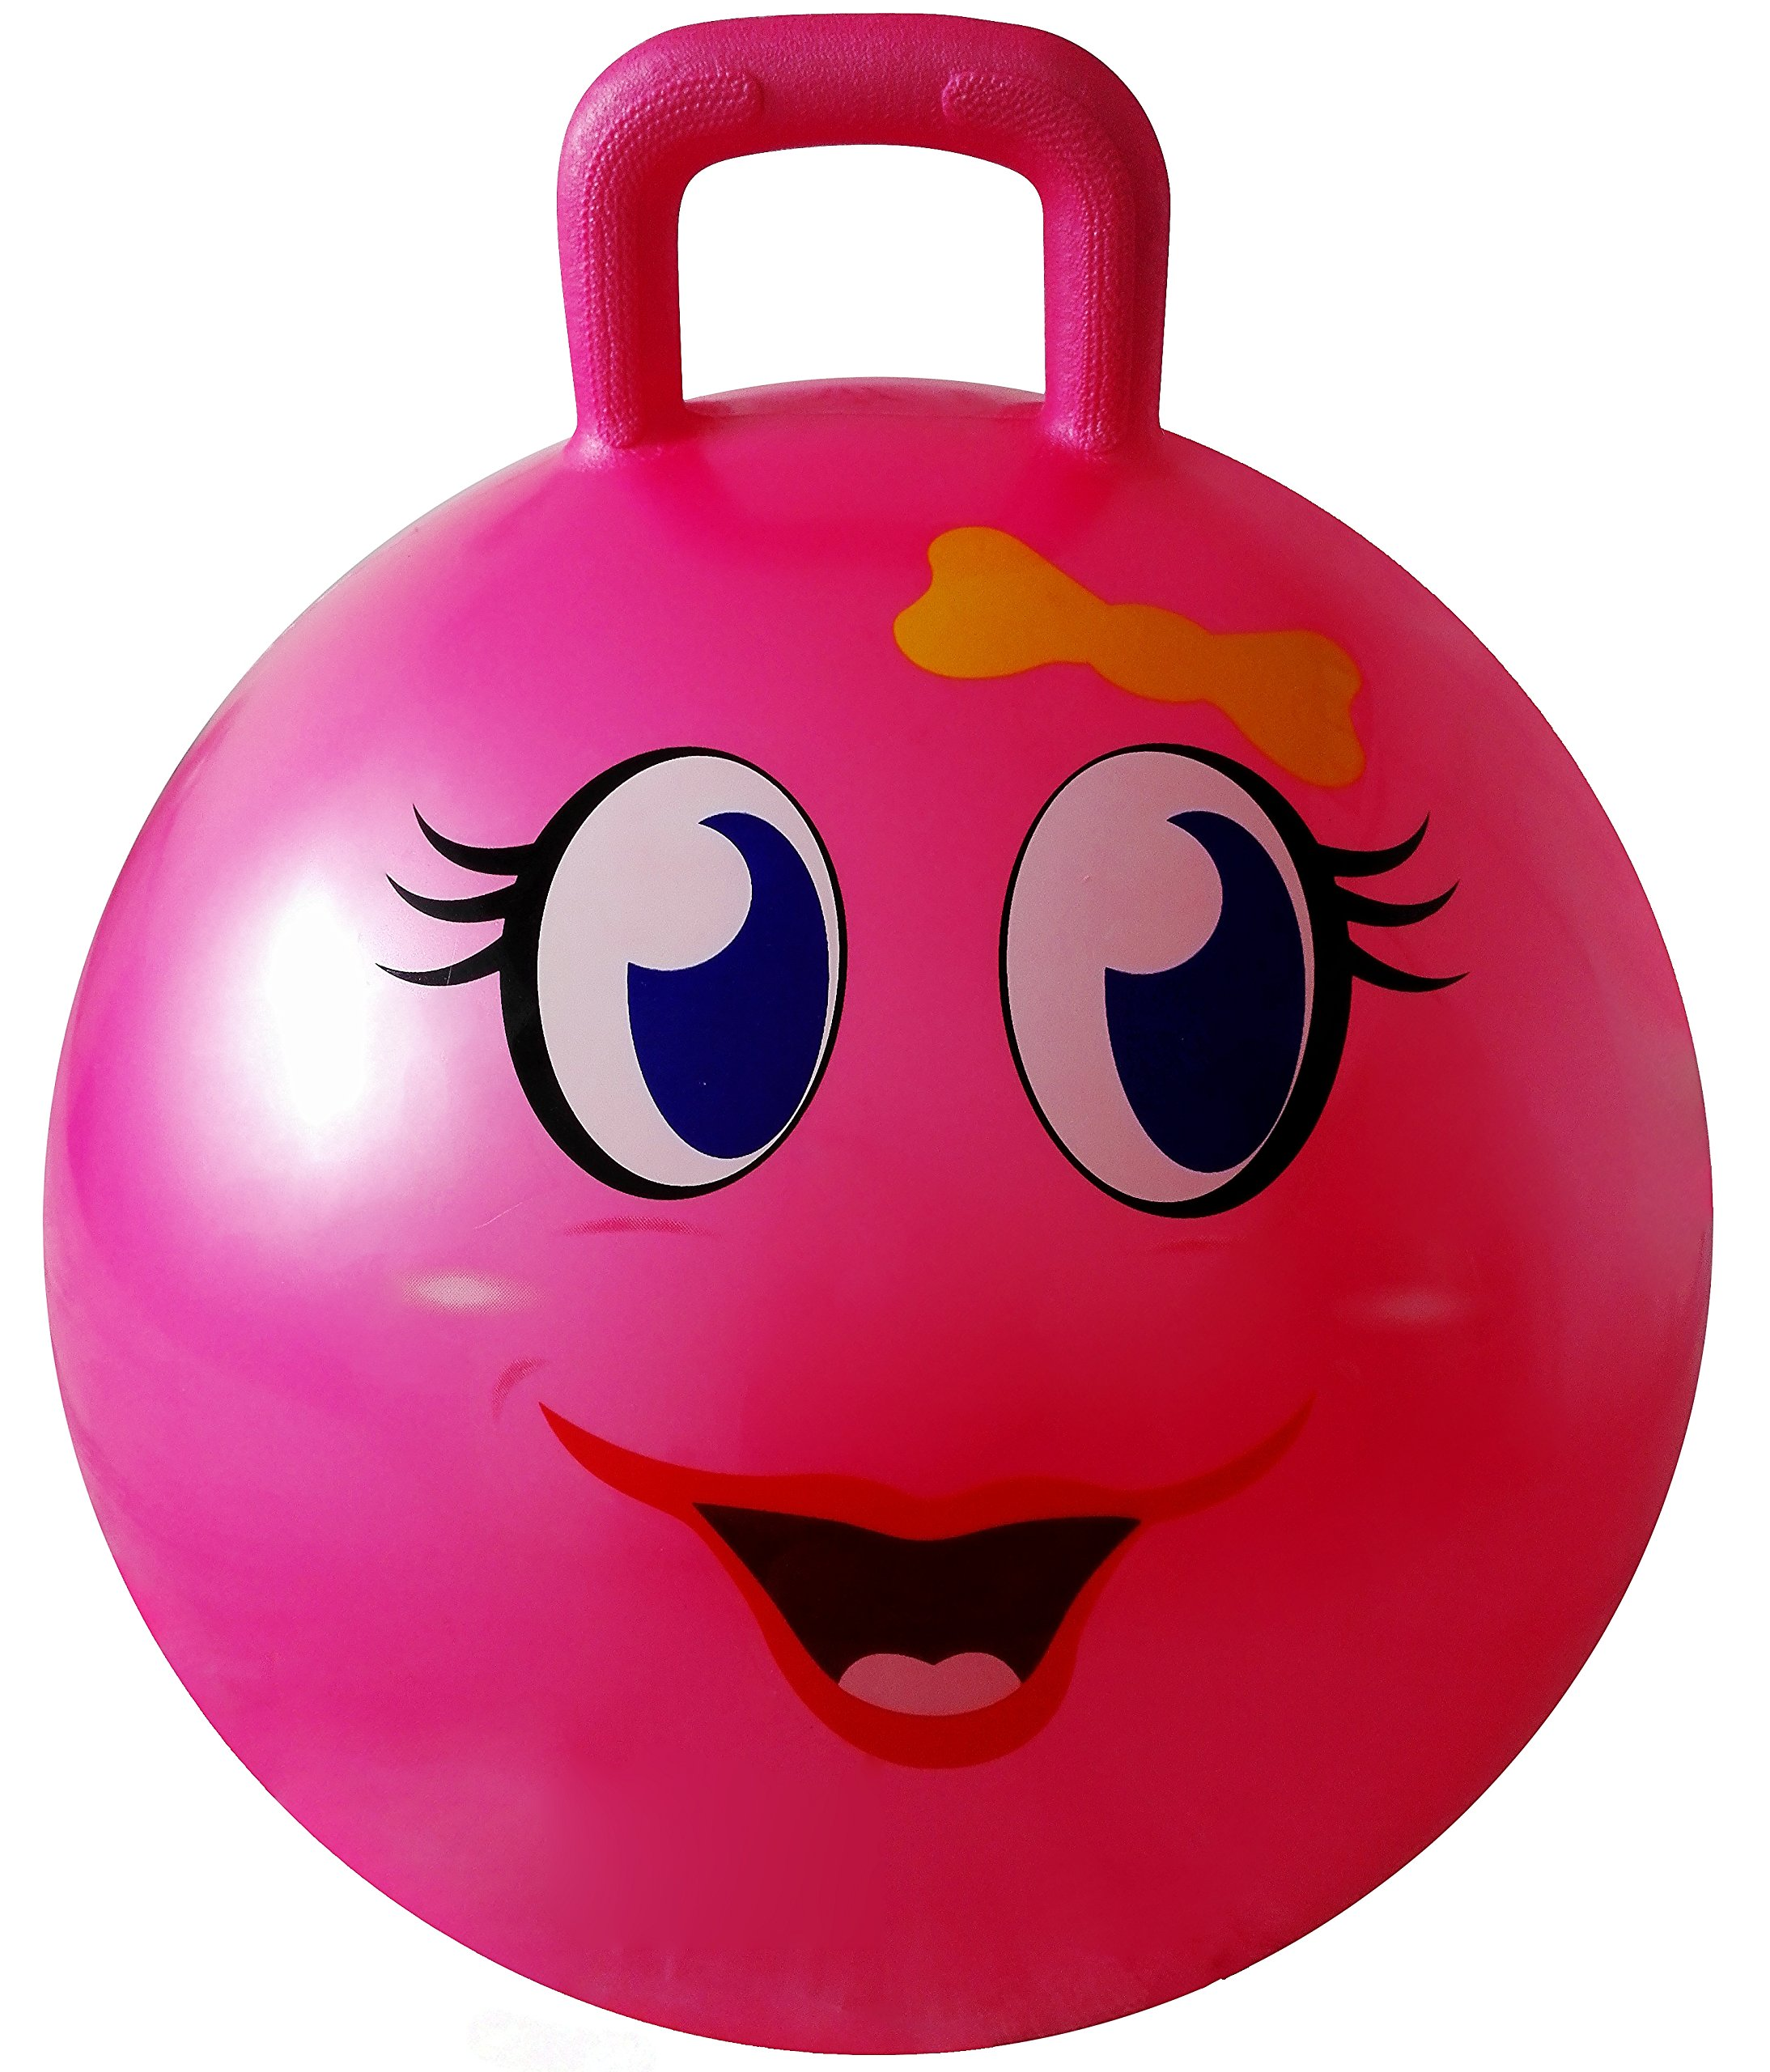 AppleRound Space Hopper Ball with Pump, 18in/45cm Diameter for Ages 3-6, Hop Ball, Kangaroo Bouncer, Hoppity Hop by AppleRound